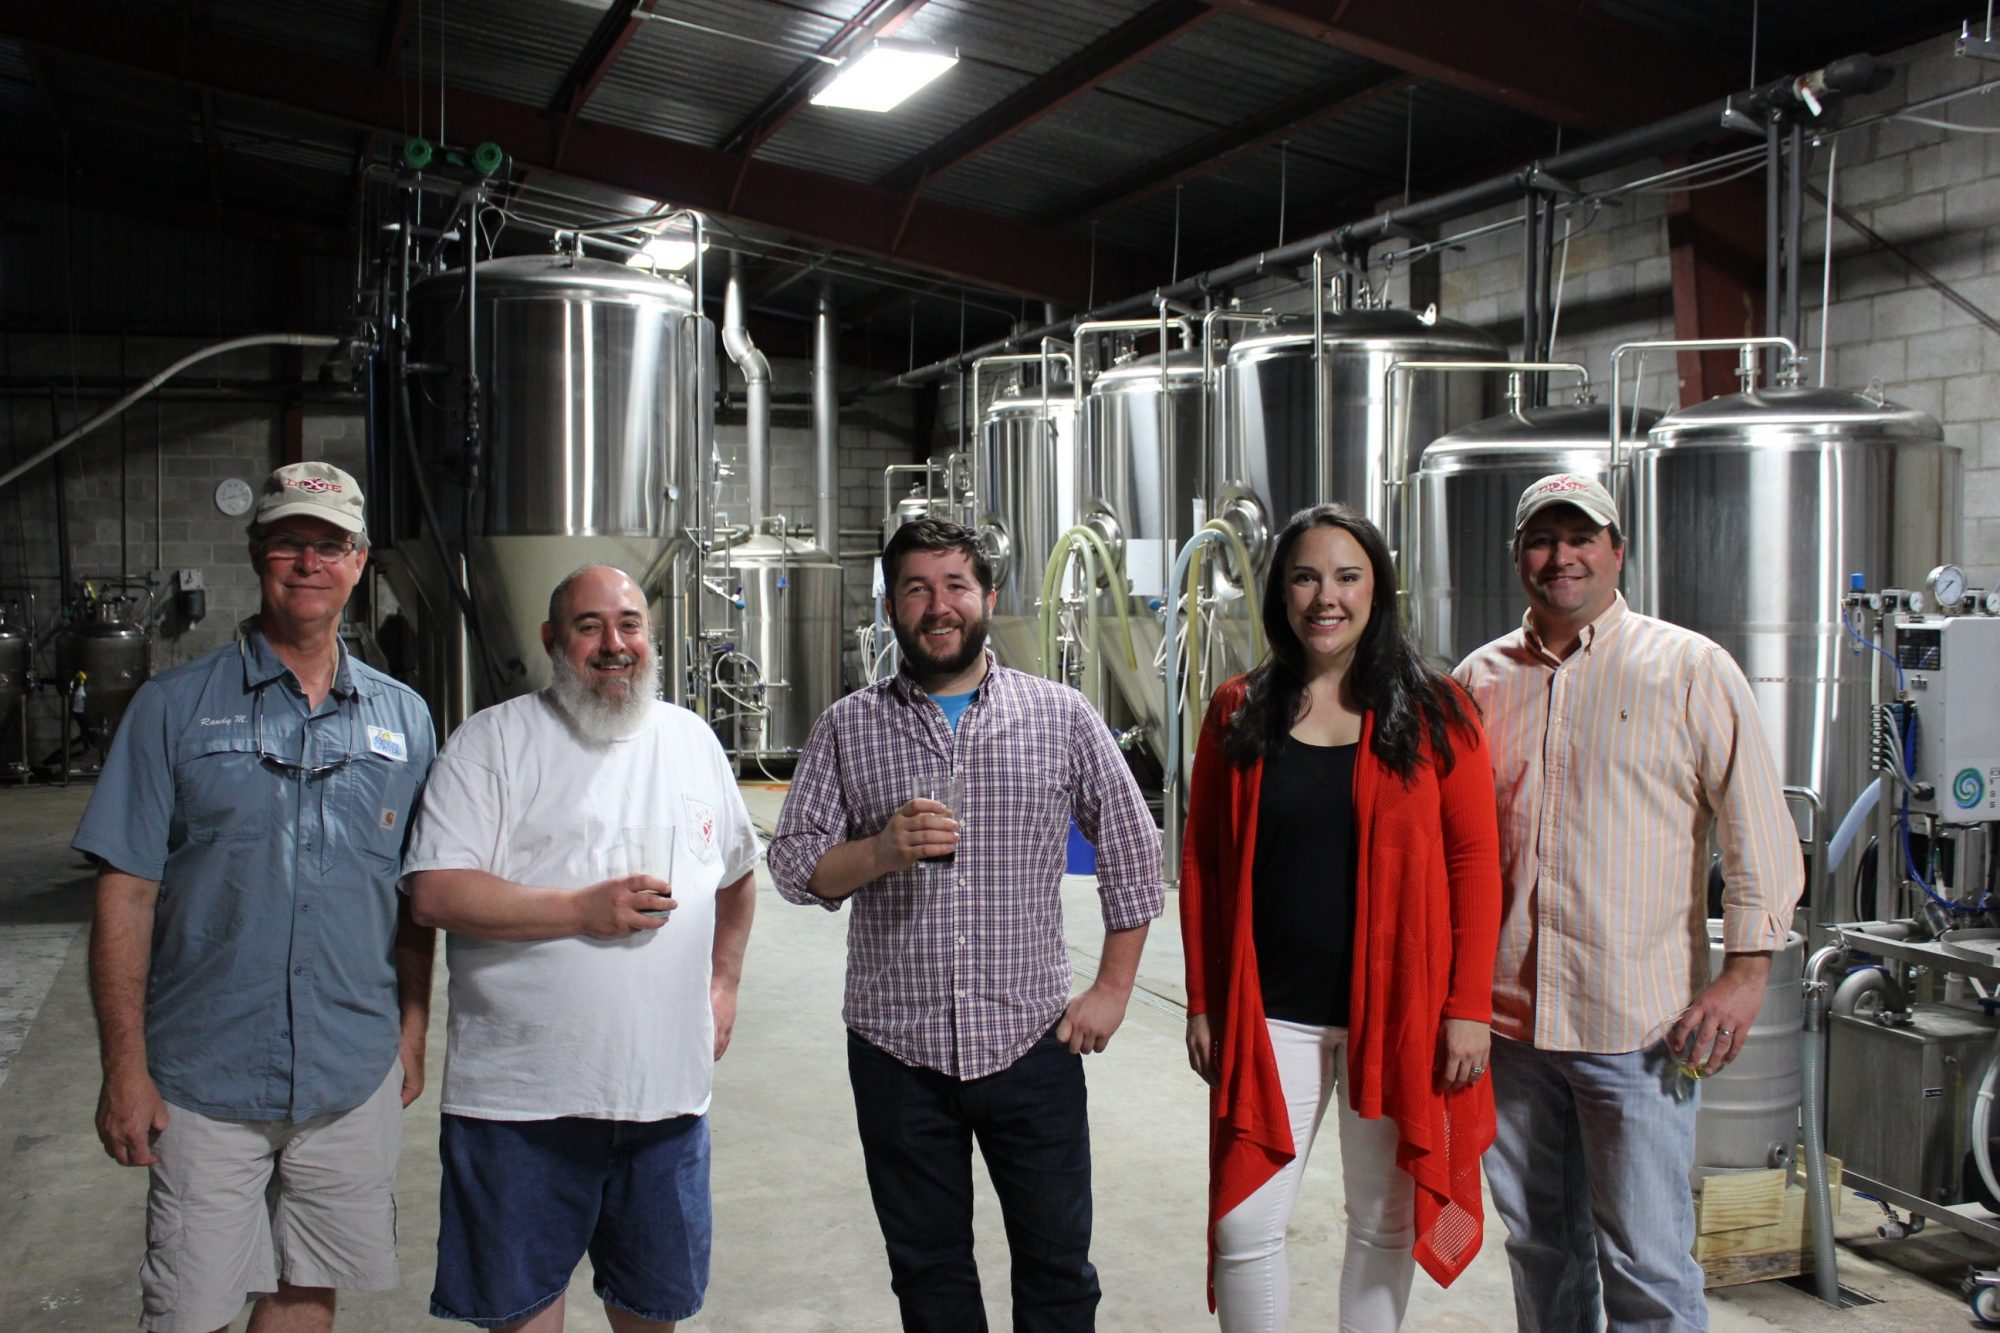 The folks of Singin' River Brewing Co.